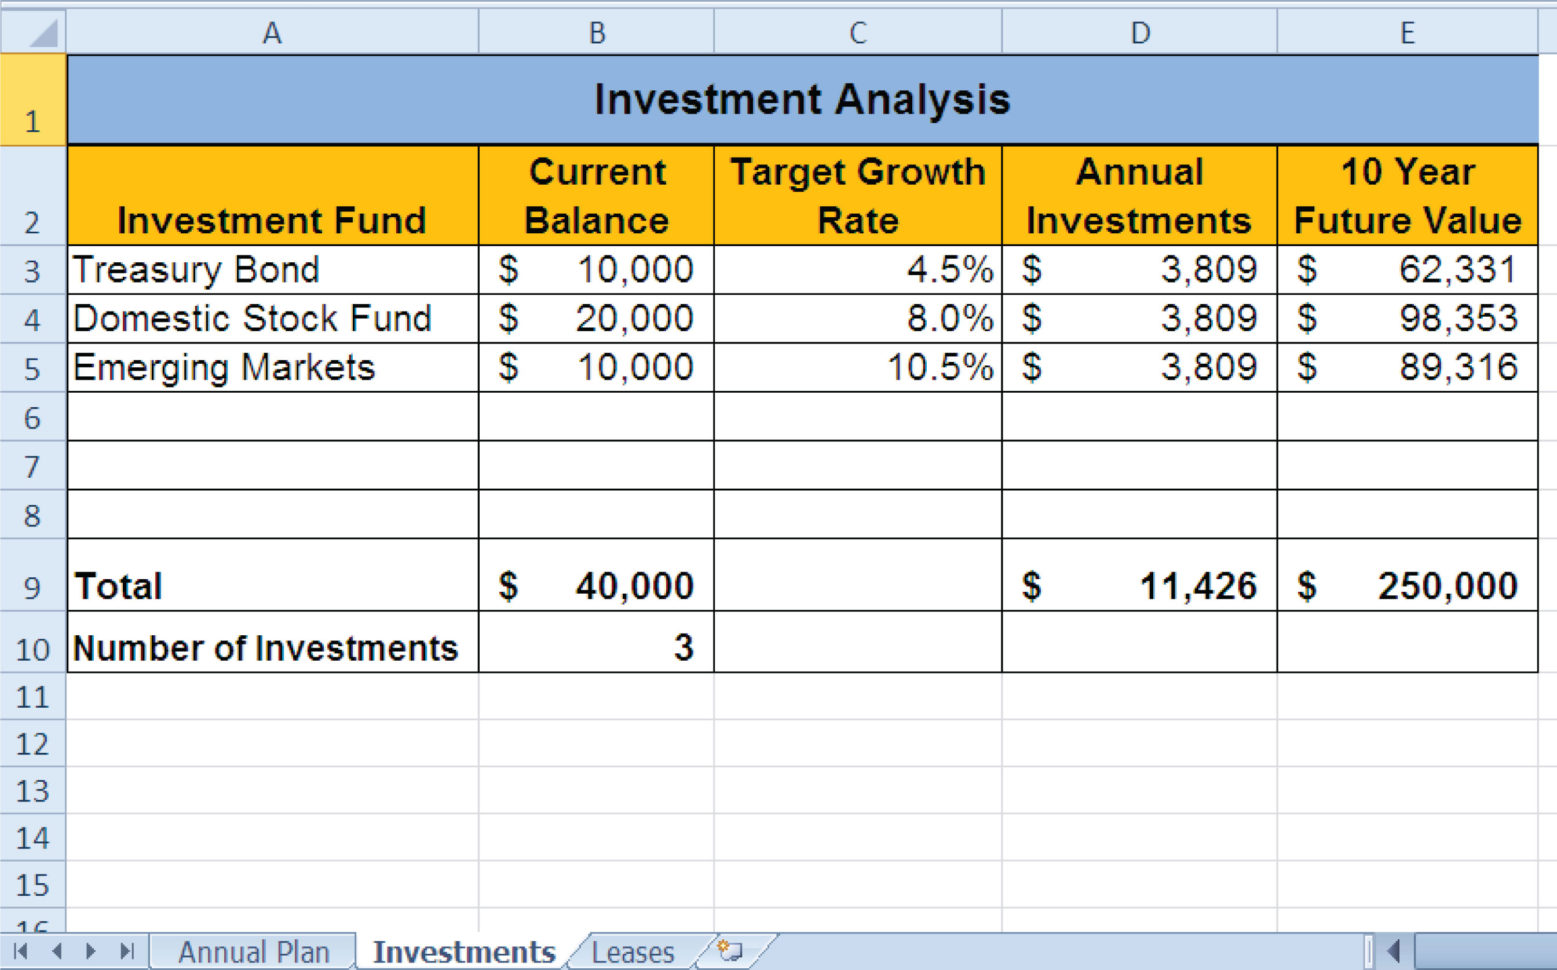 Budget Analysis Excel Spreadsheet Throughout Edfdddcecfbbfdcf Reference Of Budget Analysis Excel Test